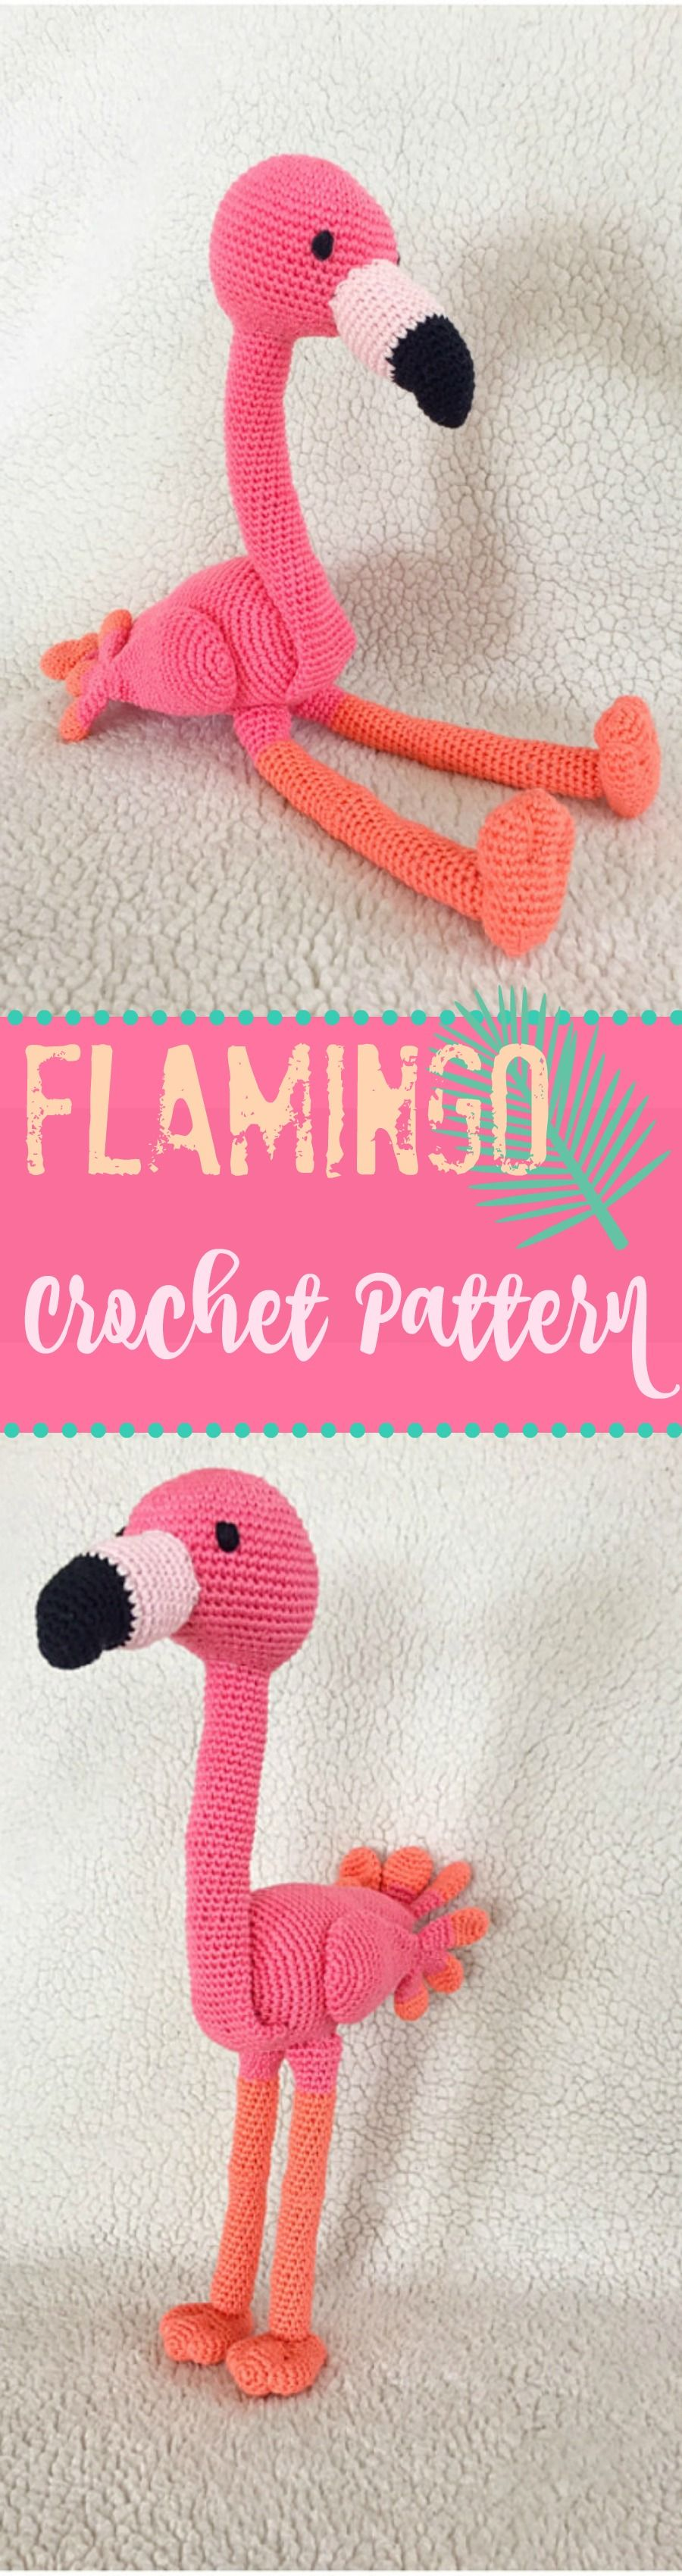 Sweet little flamingo amigurumi crochet pattern ...#afflink #crochet ...